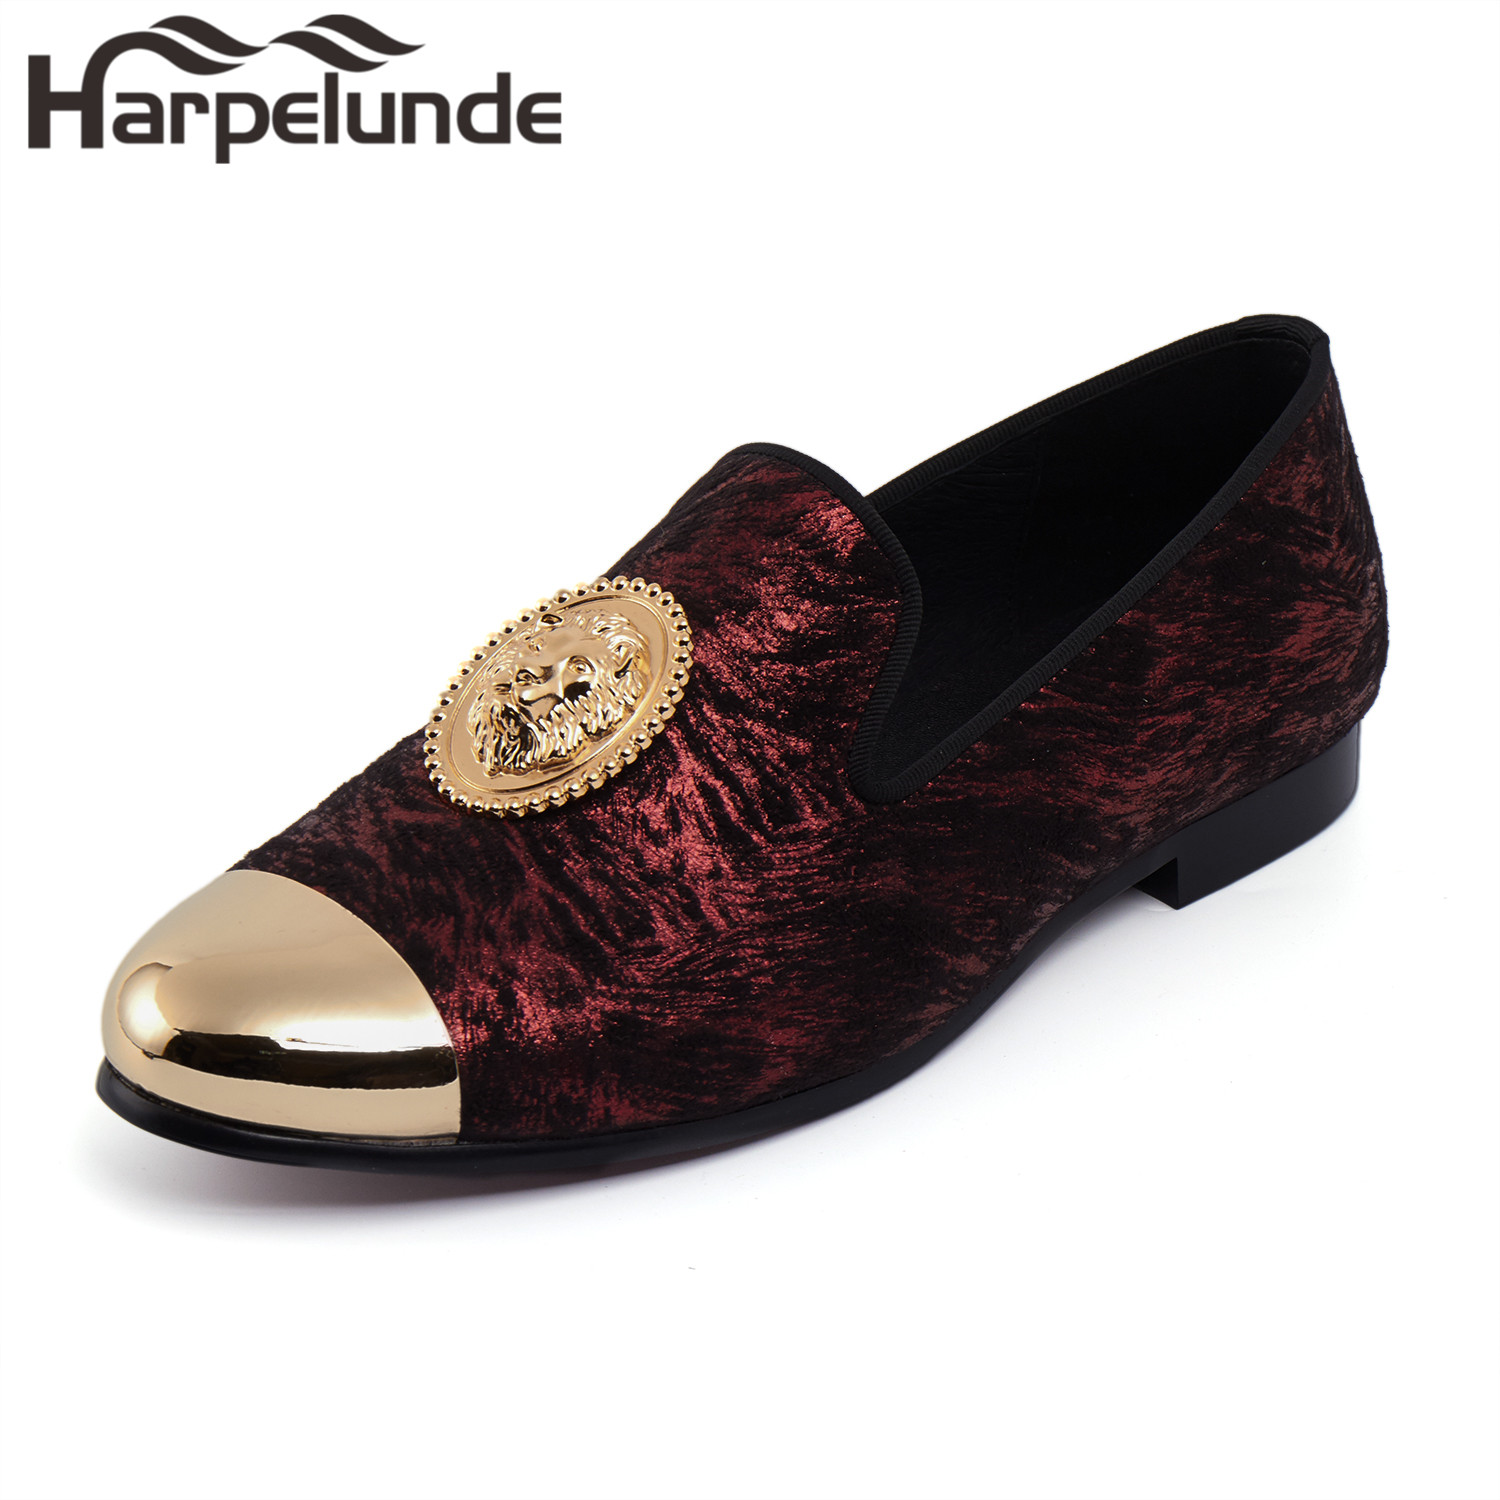 Harpelunde Animal Buckle Men Dress Loafers Printed Velvet Flat Shoes With Copper Cap Toe Size 6 To 14